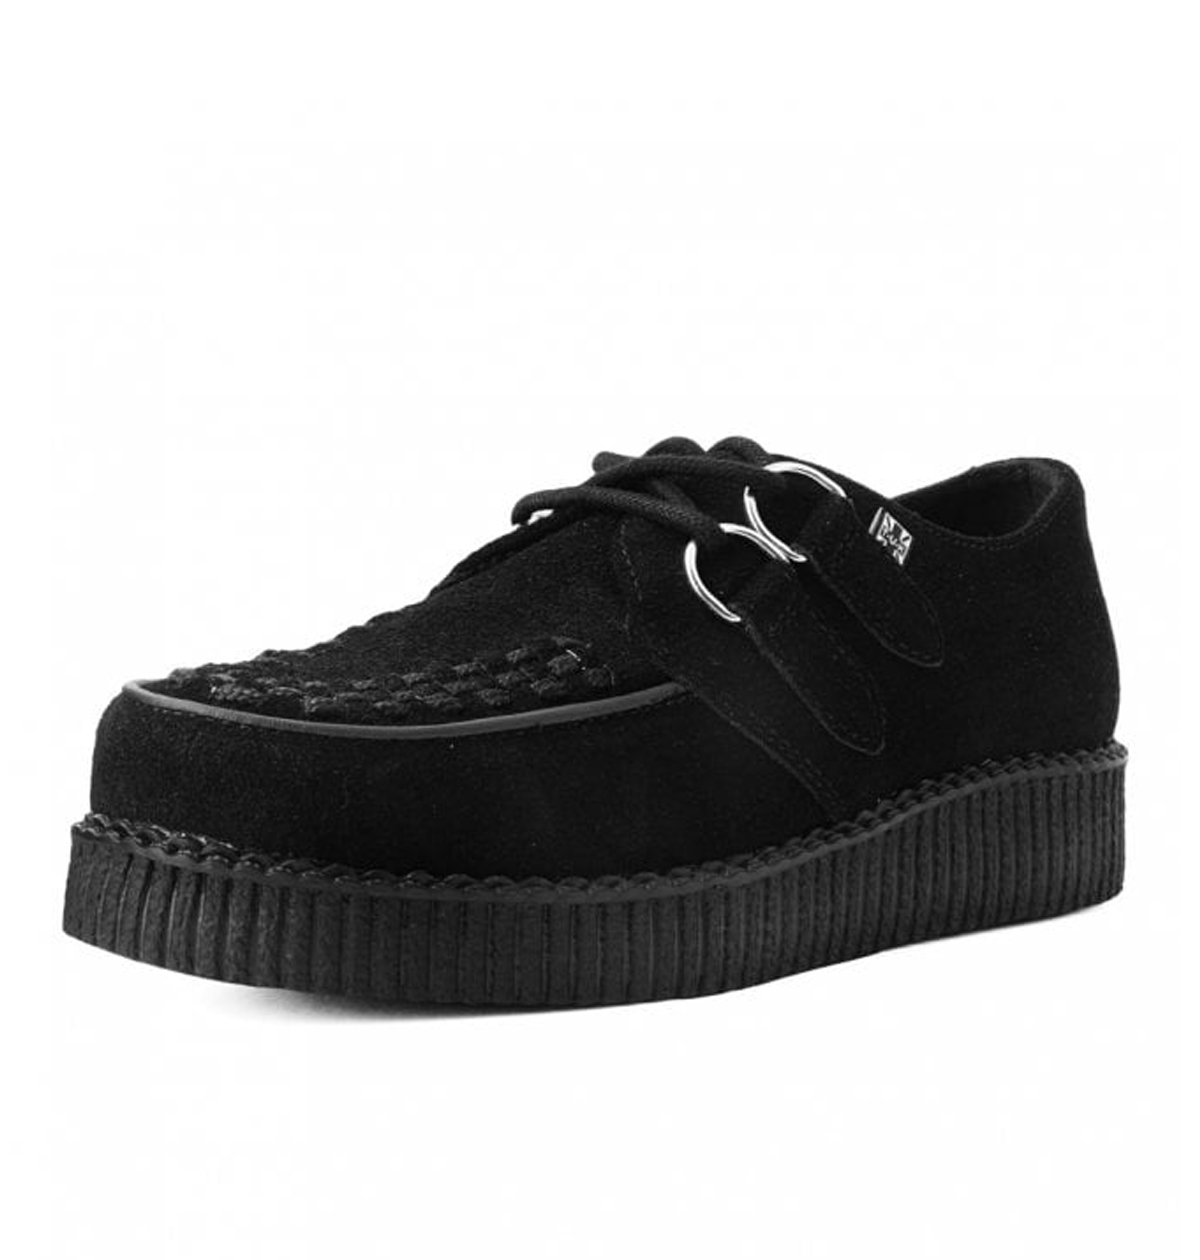 T.U.K. SHOES BLACK SUEDE VIVA FLEX ULTRA LOW SOLE CREEPER